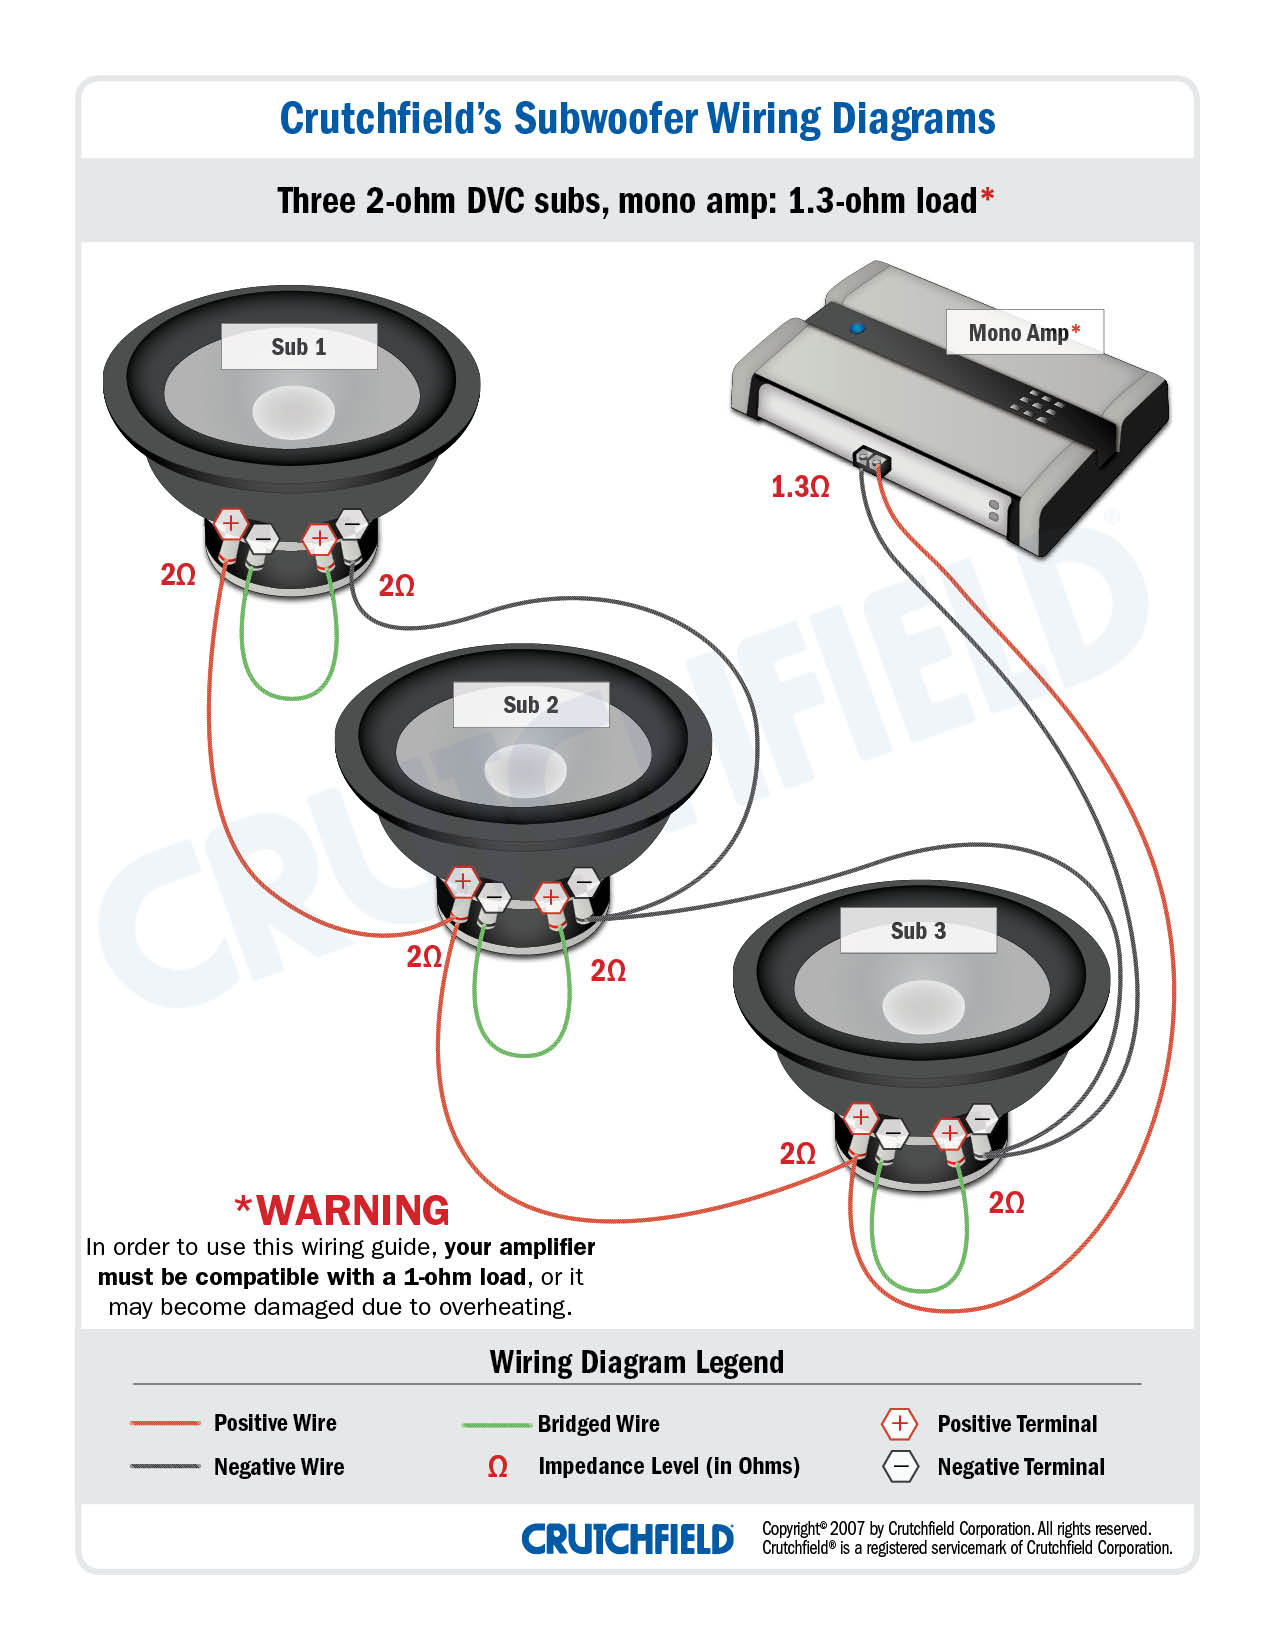 voice coil subwoofer wiring diagram wiring diagram \u2022 wiring diagram subwoofer subwoofer wiring diagrams rh crutchfield com single voice coil subwoofer wiring diagram single voice coil subwoofer